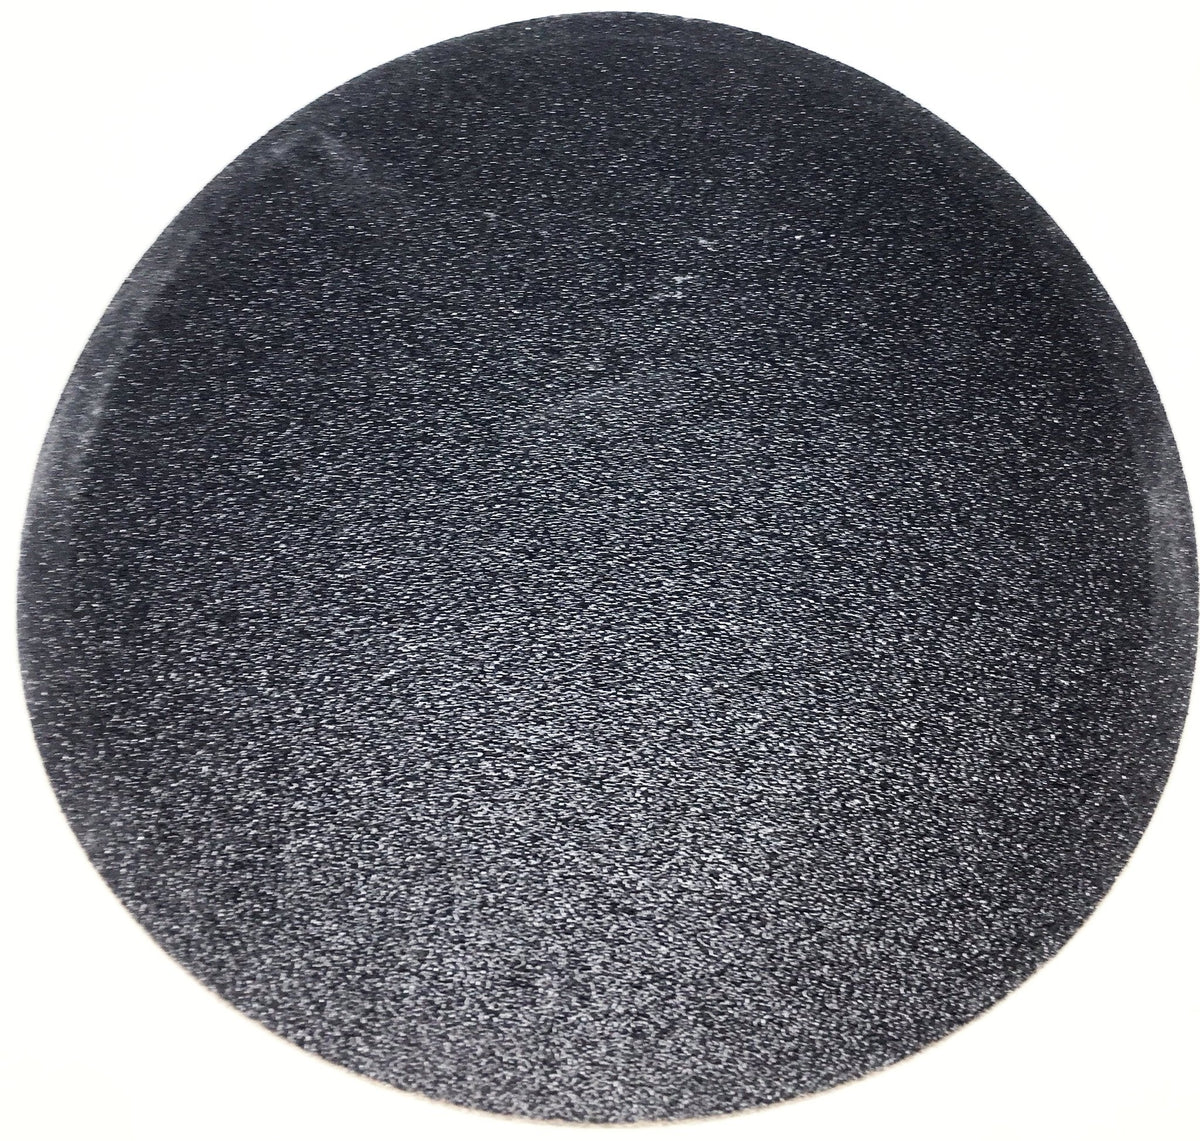 DiamondCore Self Adhesive 12 inch Silicon Carbide Grinding Disc